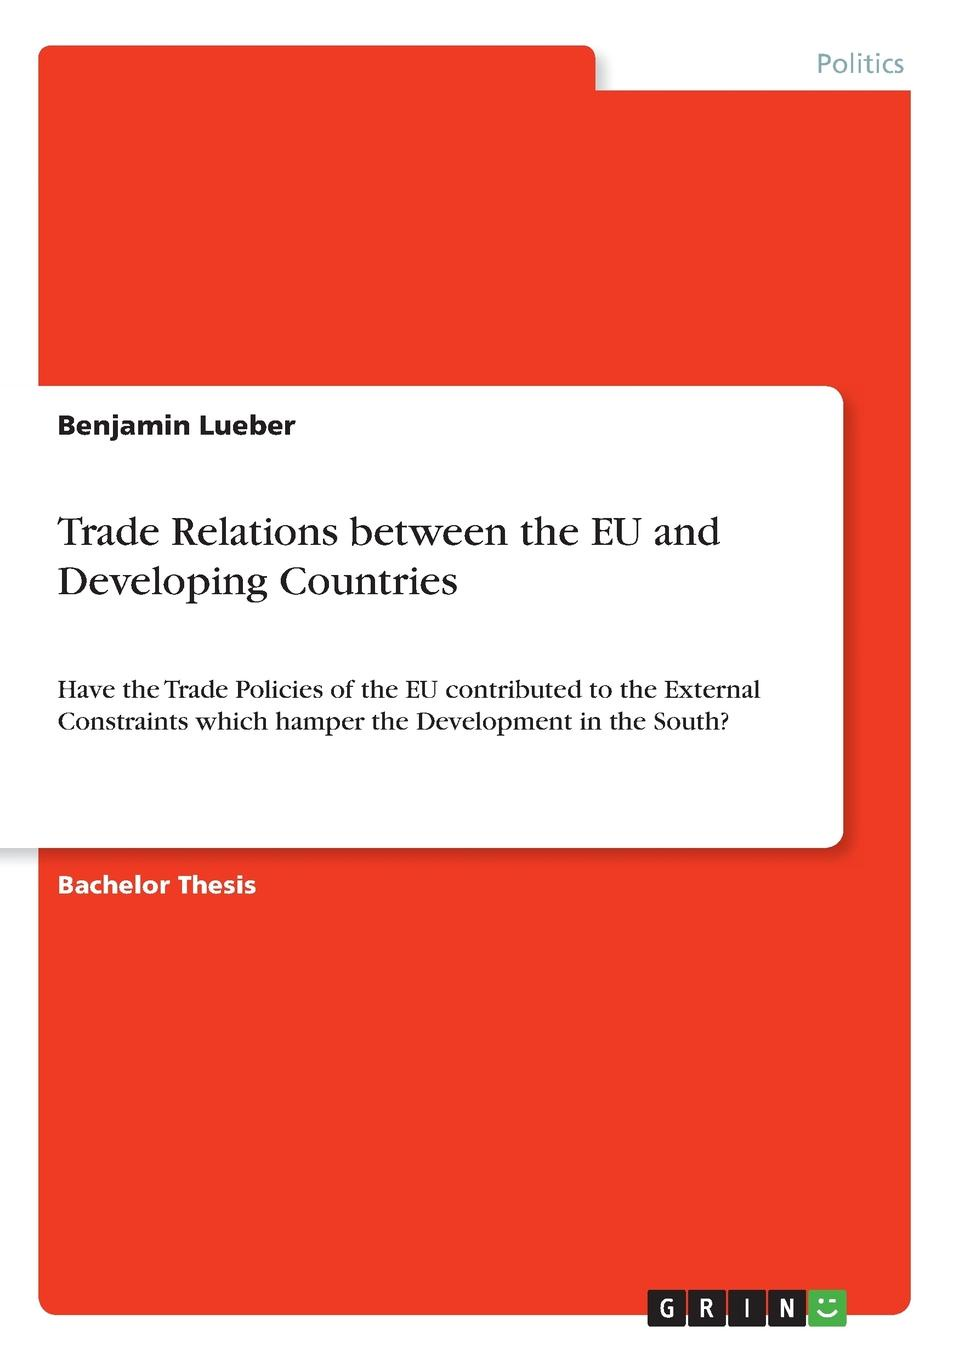 Benjamin Lueber Trade Relations between the EU and Developing Countries sergey okulov the ultimate question the theory ofeverything